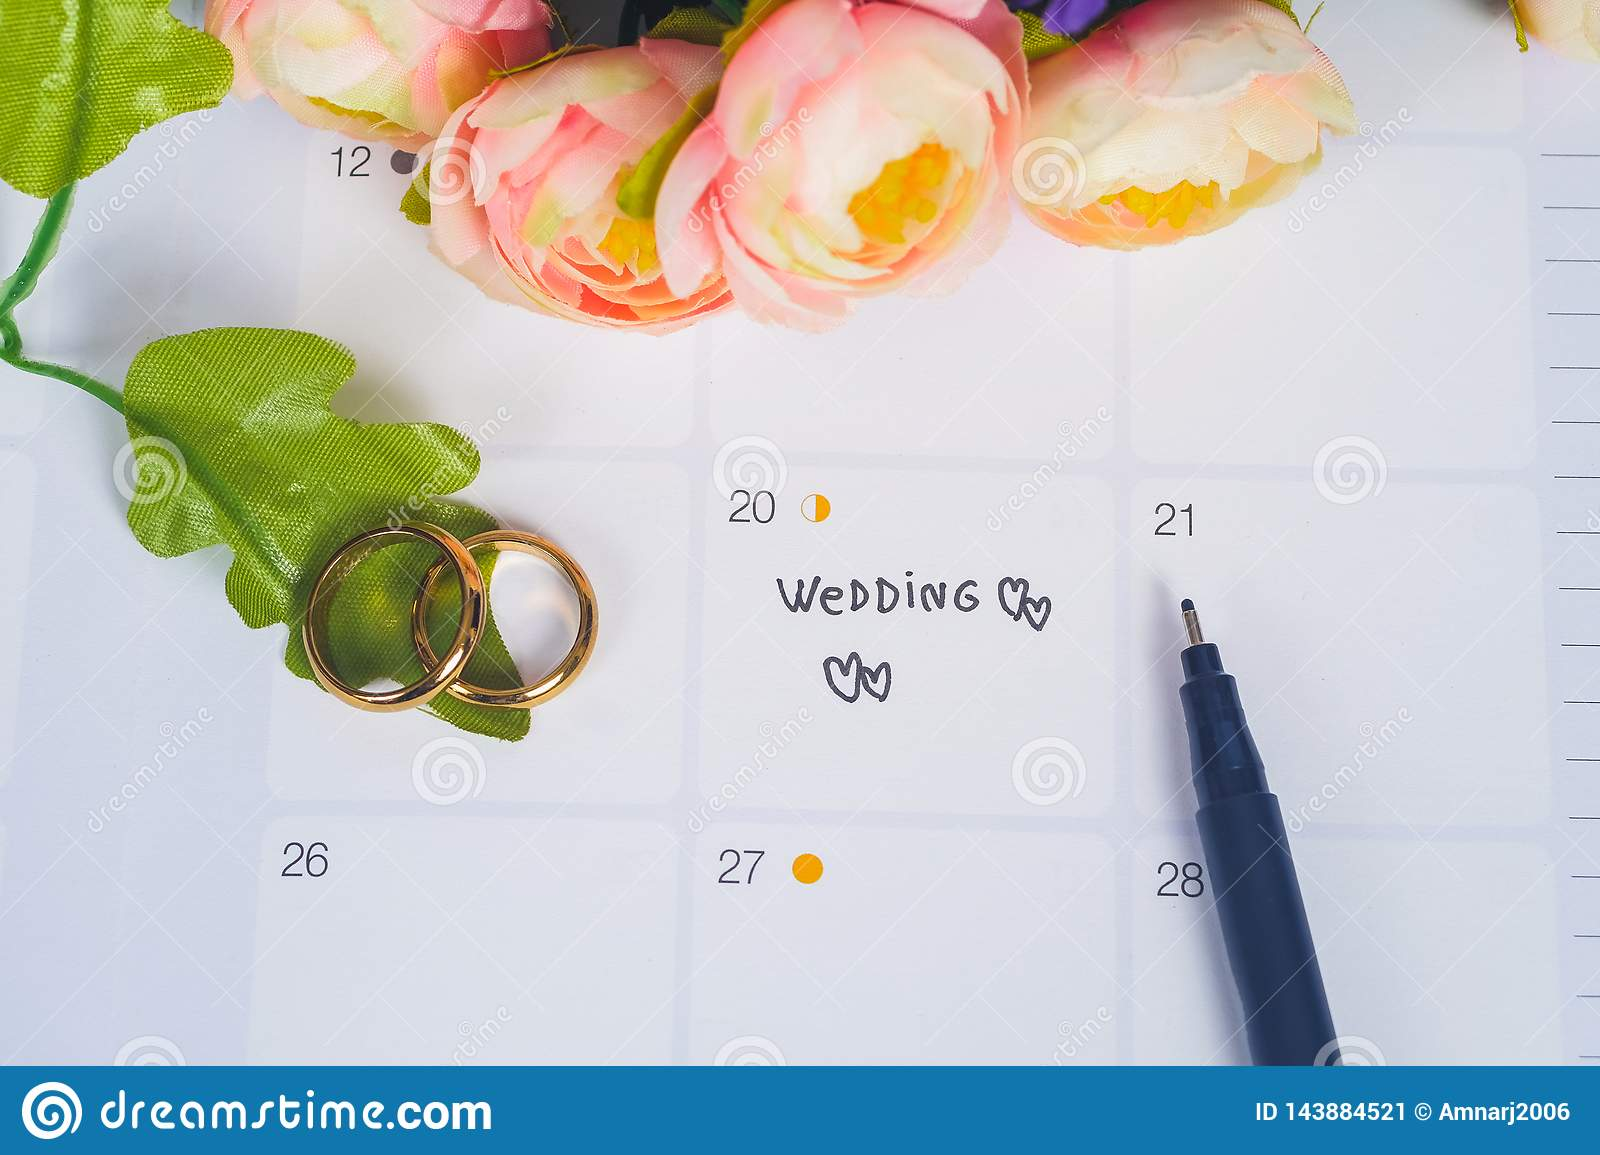 Word Wedding to Reminder Wedding day with Wedding ring on calendar planning